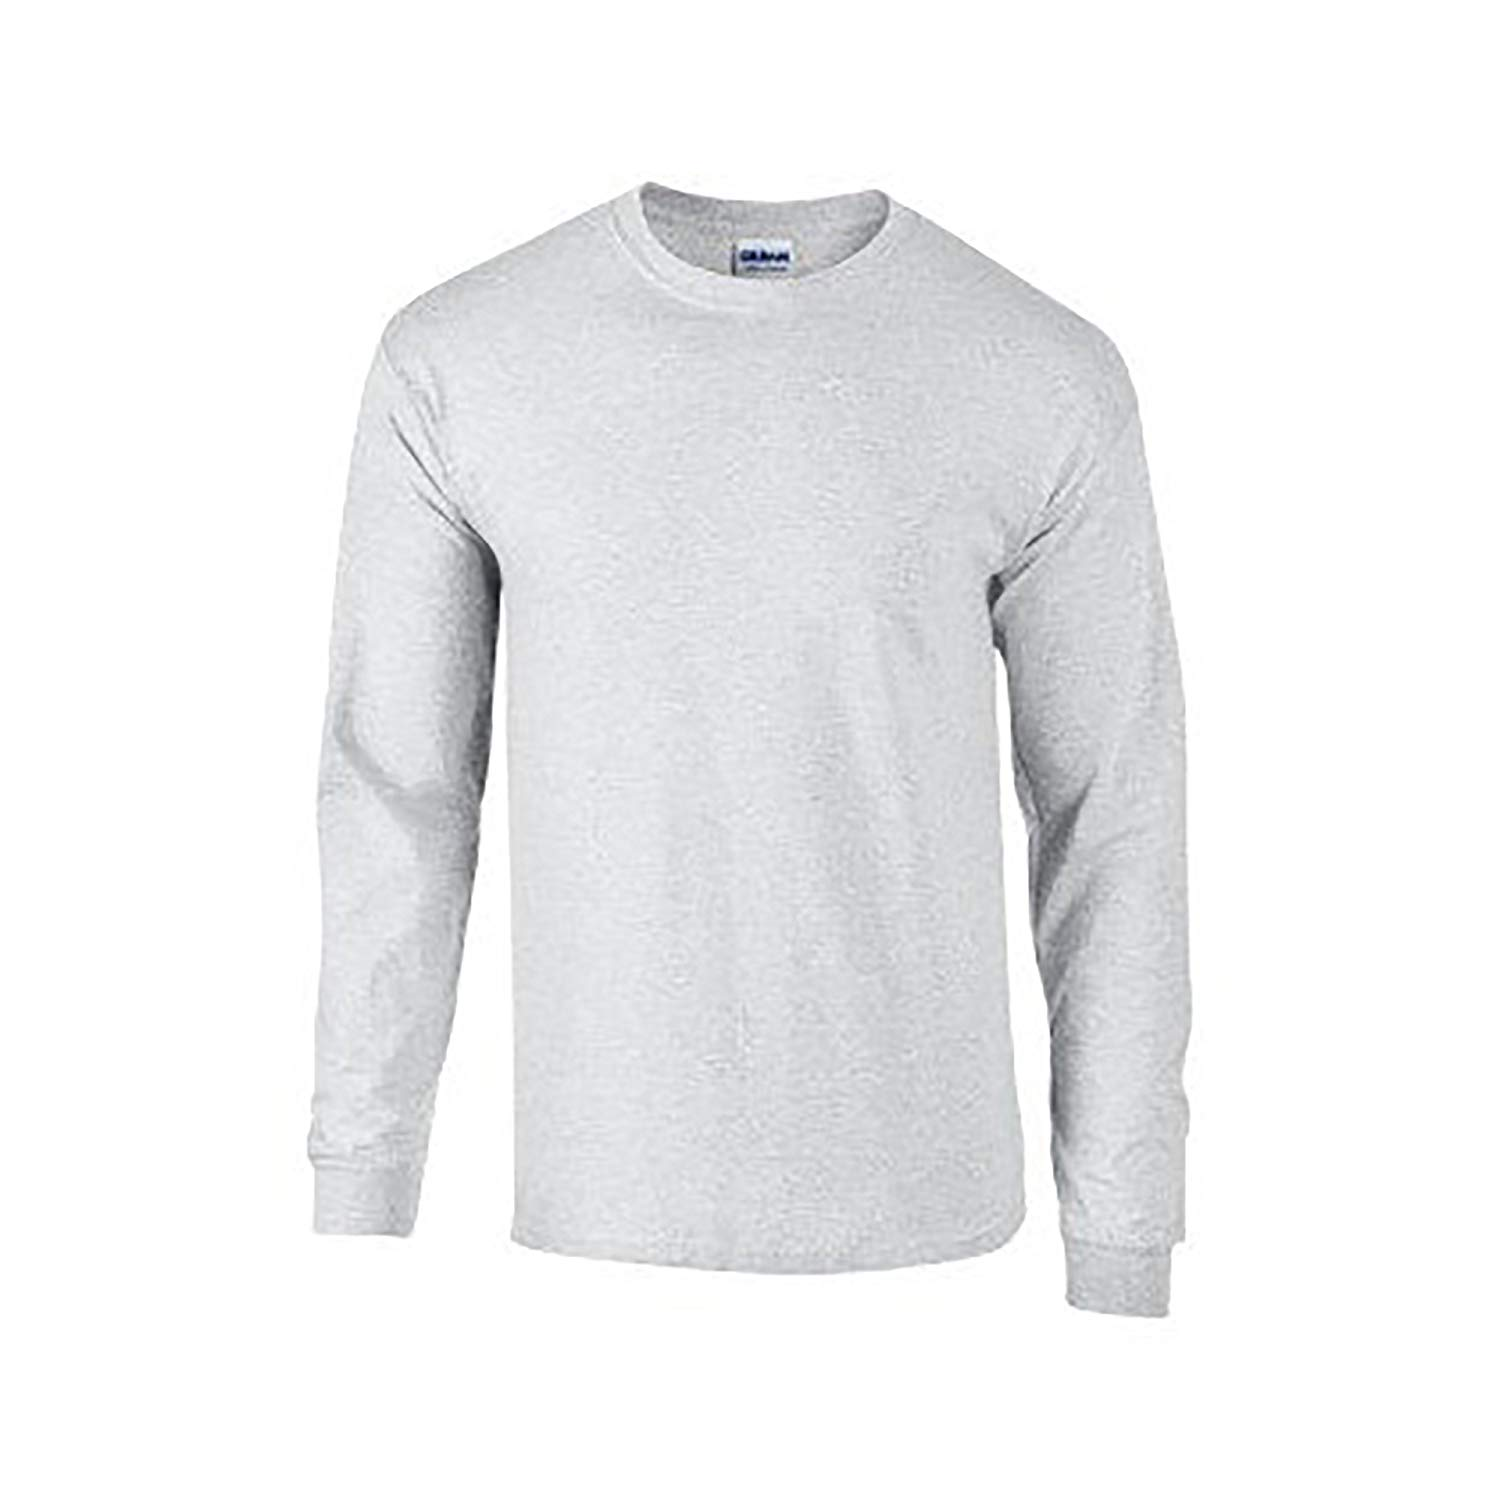 Long Sleeve Shirts for Men amazon.com: gildan mens plain crew neck ultra cotton long sleeve t-shirt:  clothing ZMFVLBW